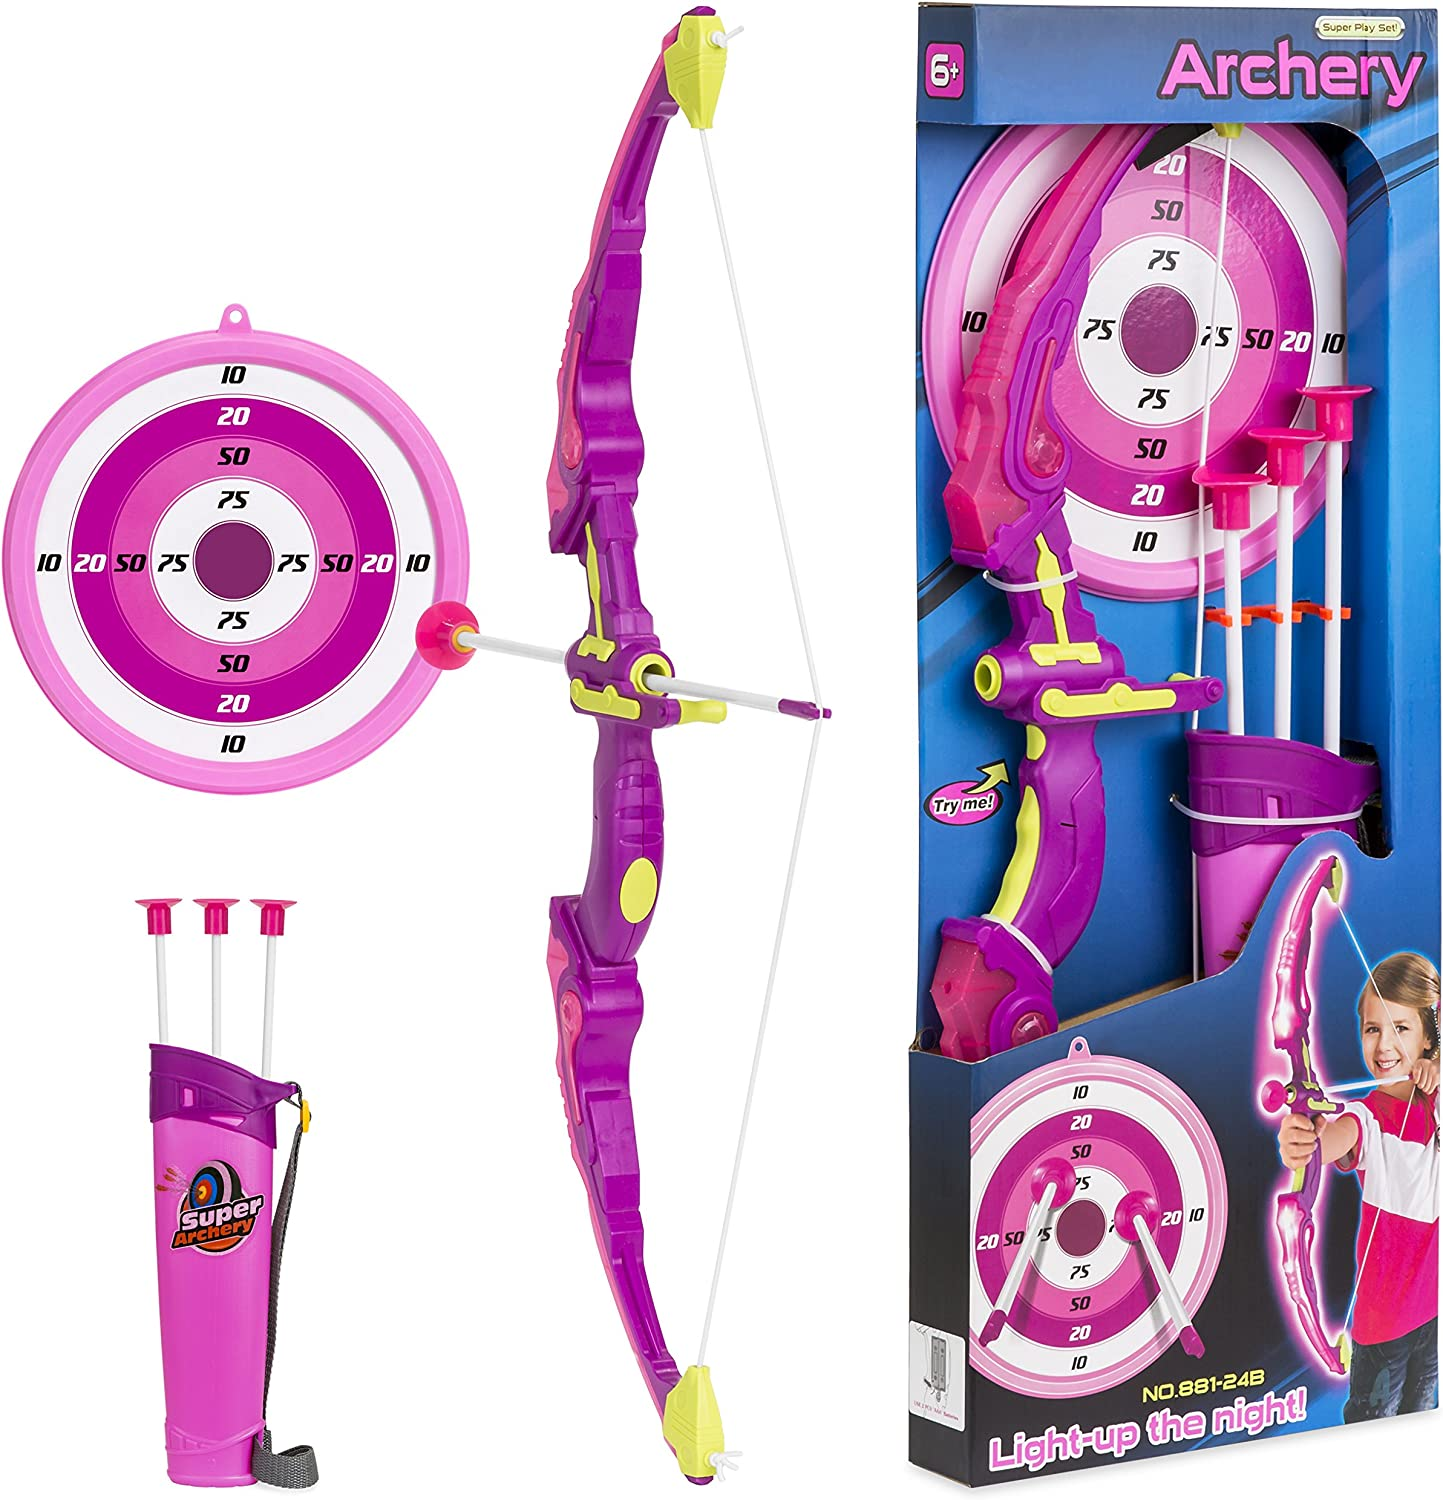 Kids Archery Set Light Up the Night Action Toy Children Toys Gift Item